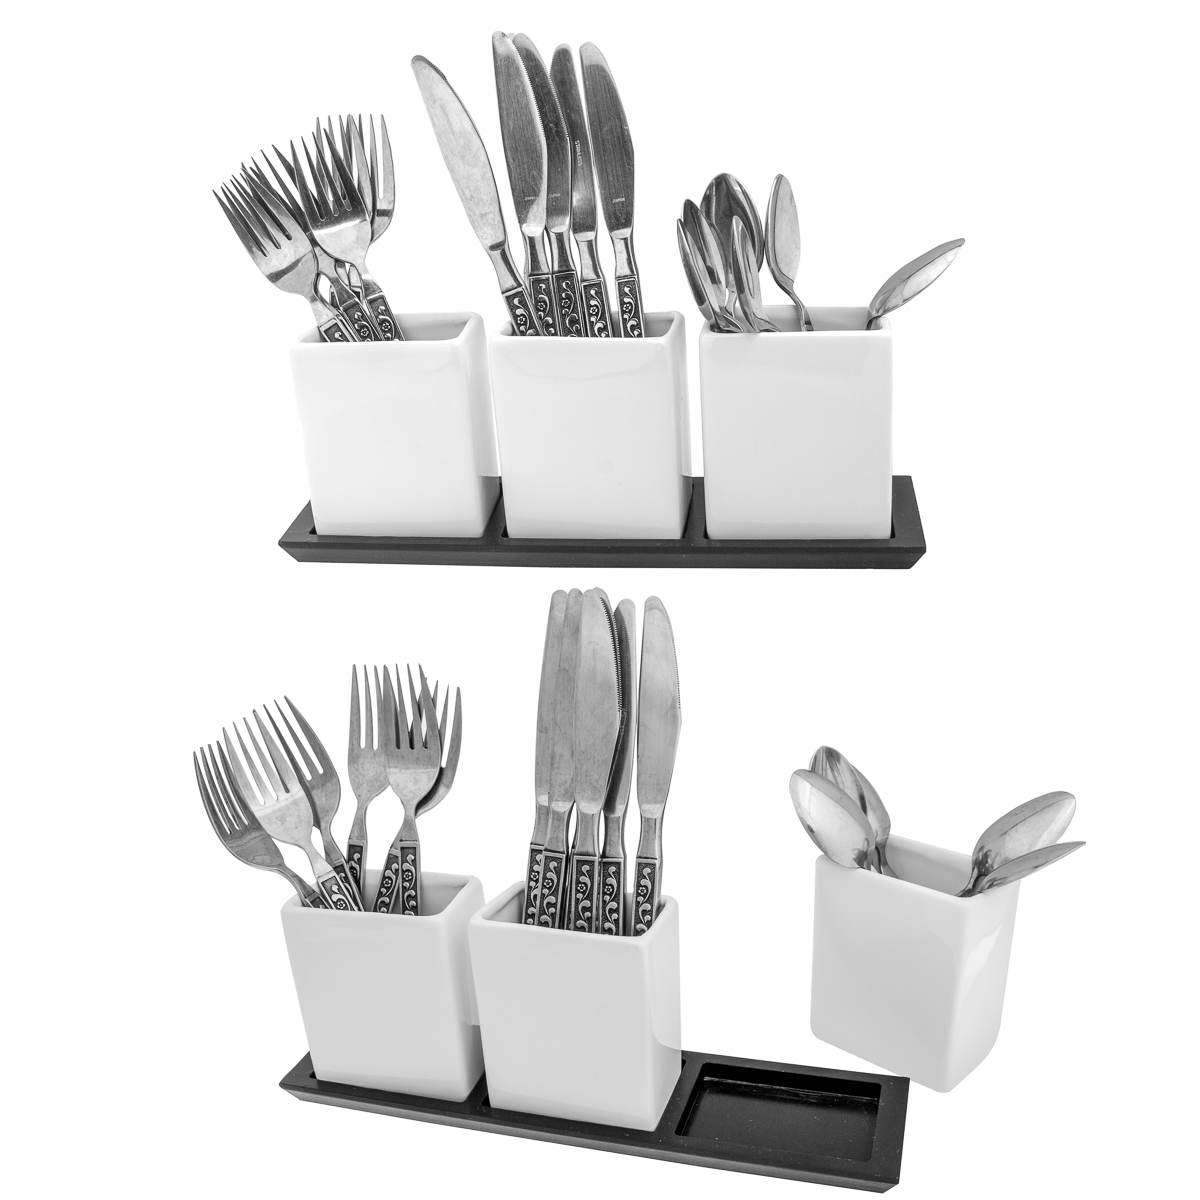 Cobble Creek (8 piece) Ceramic Utensil Caddy Set for Home Party Pantry Organization and Storage